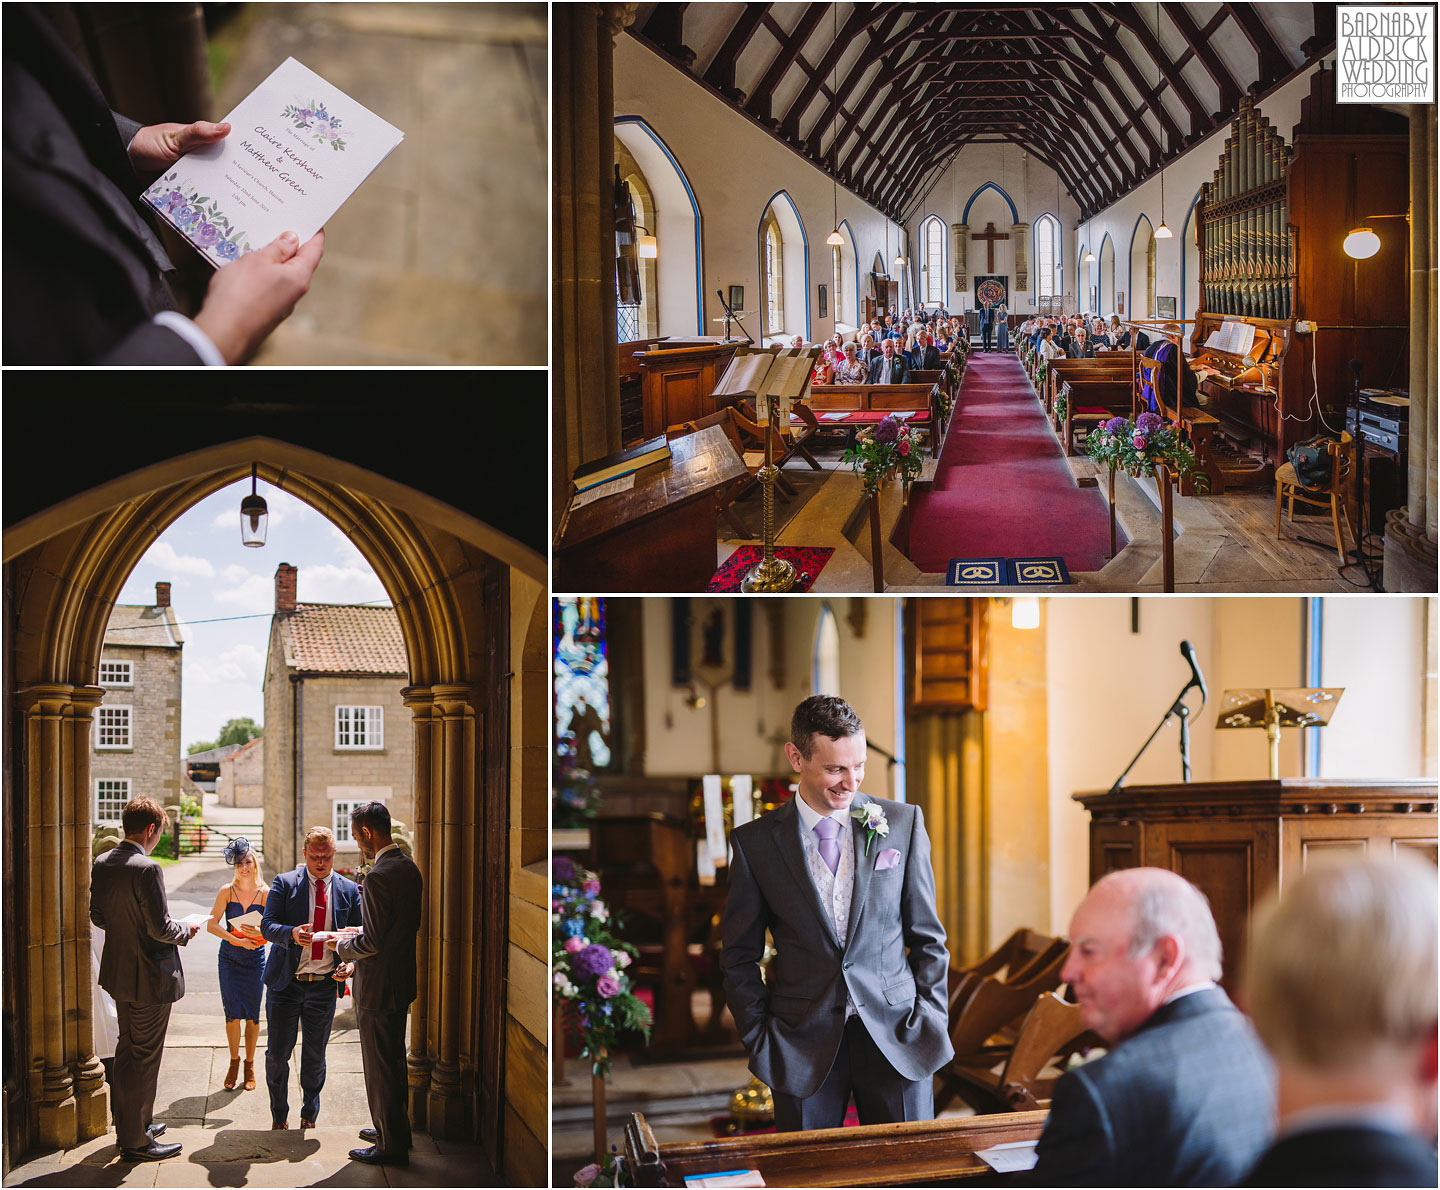 Wedding at St Saviours Church Harome, Pheasant Harome Wedding Photography, The Pheasant Hotel Wedding, Wedding Photography at The Pheasant Hotel North Yorkshire, North Yorkshire Wedding Photographer